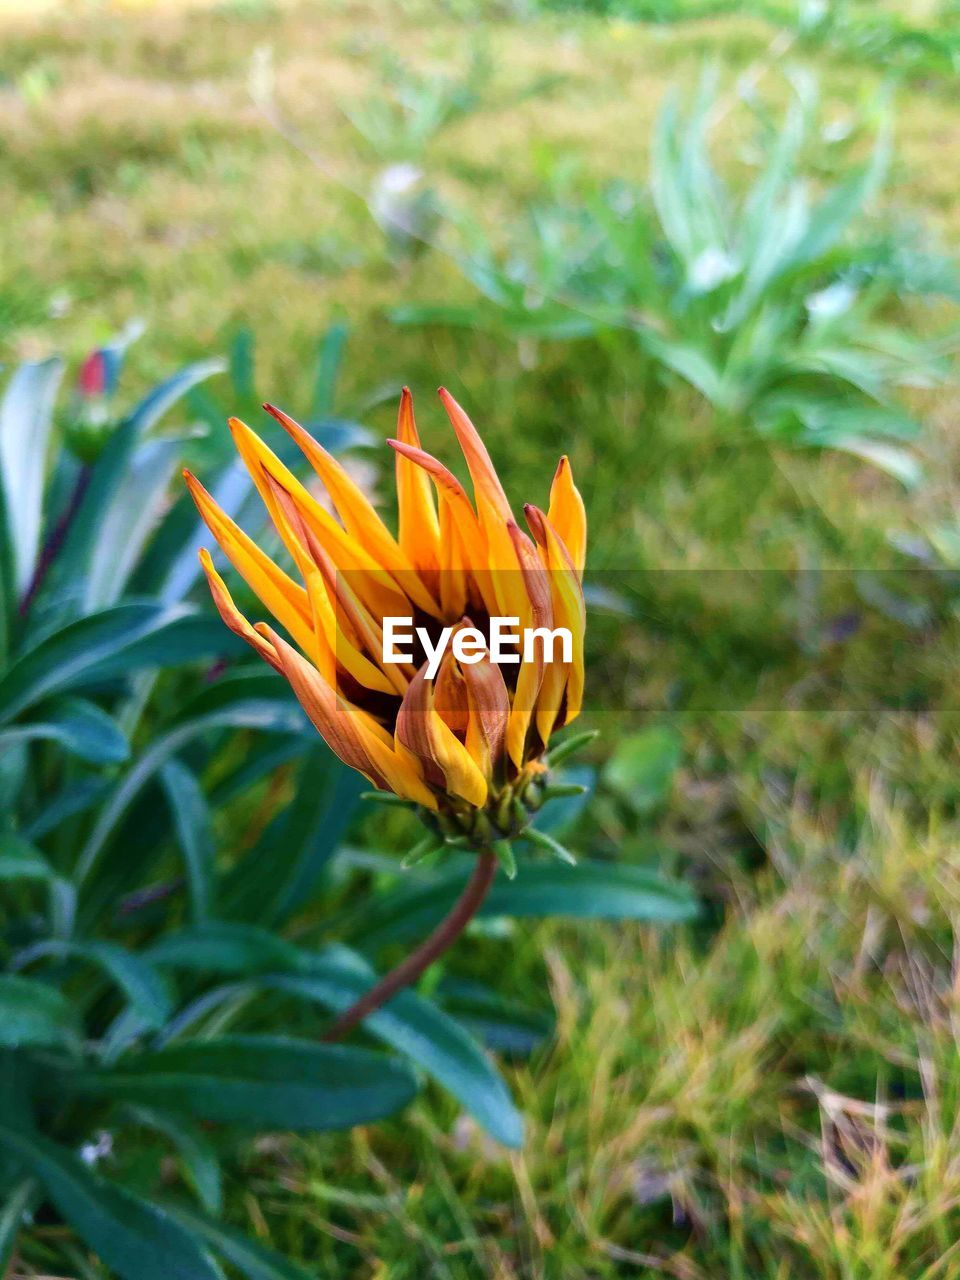 flowering plant, plant, flower, beauty in nature, growth, freshness, petal, fragility, vulnerability, flower head, inflorescence, close-up, orange color, day, nature, focus on foreground, no people, land, field, outdoors